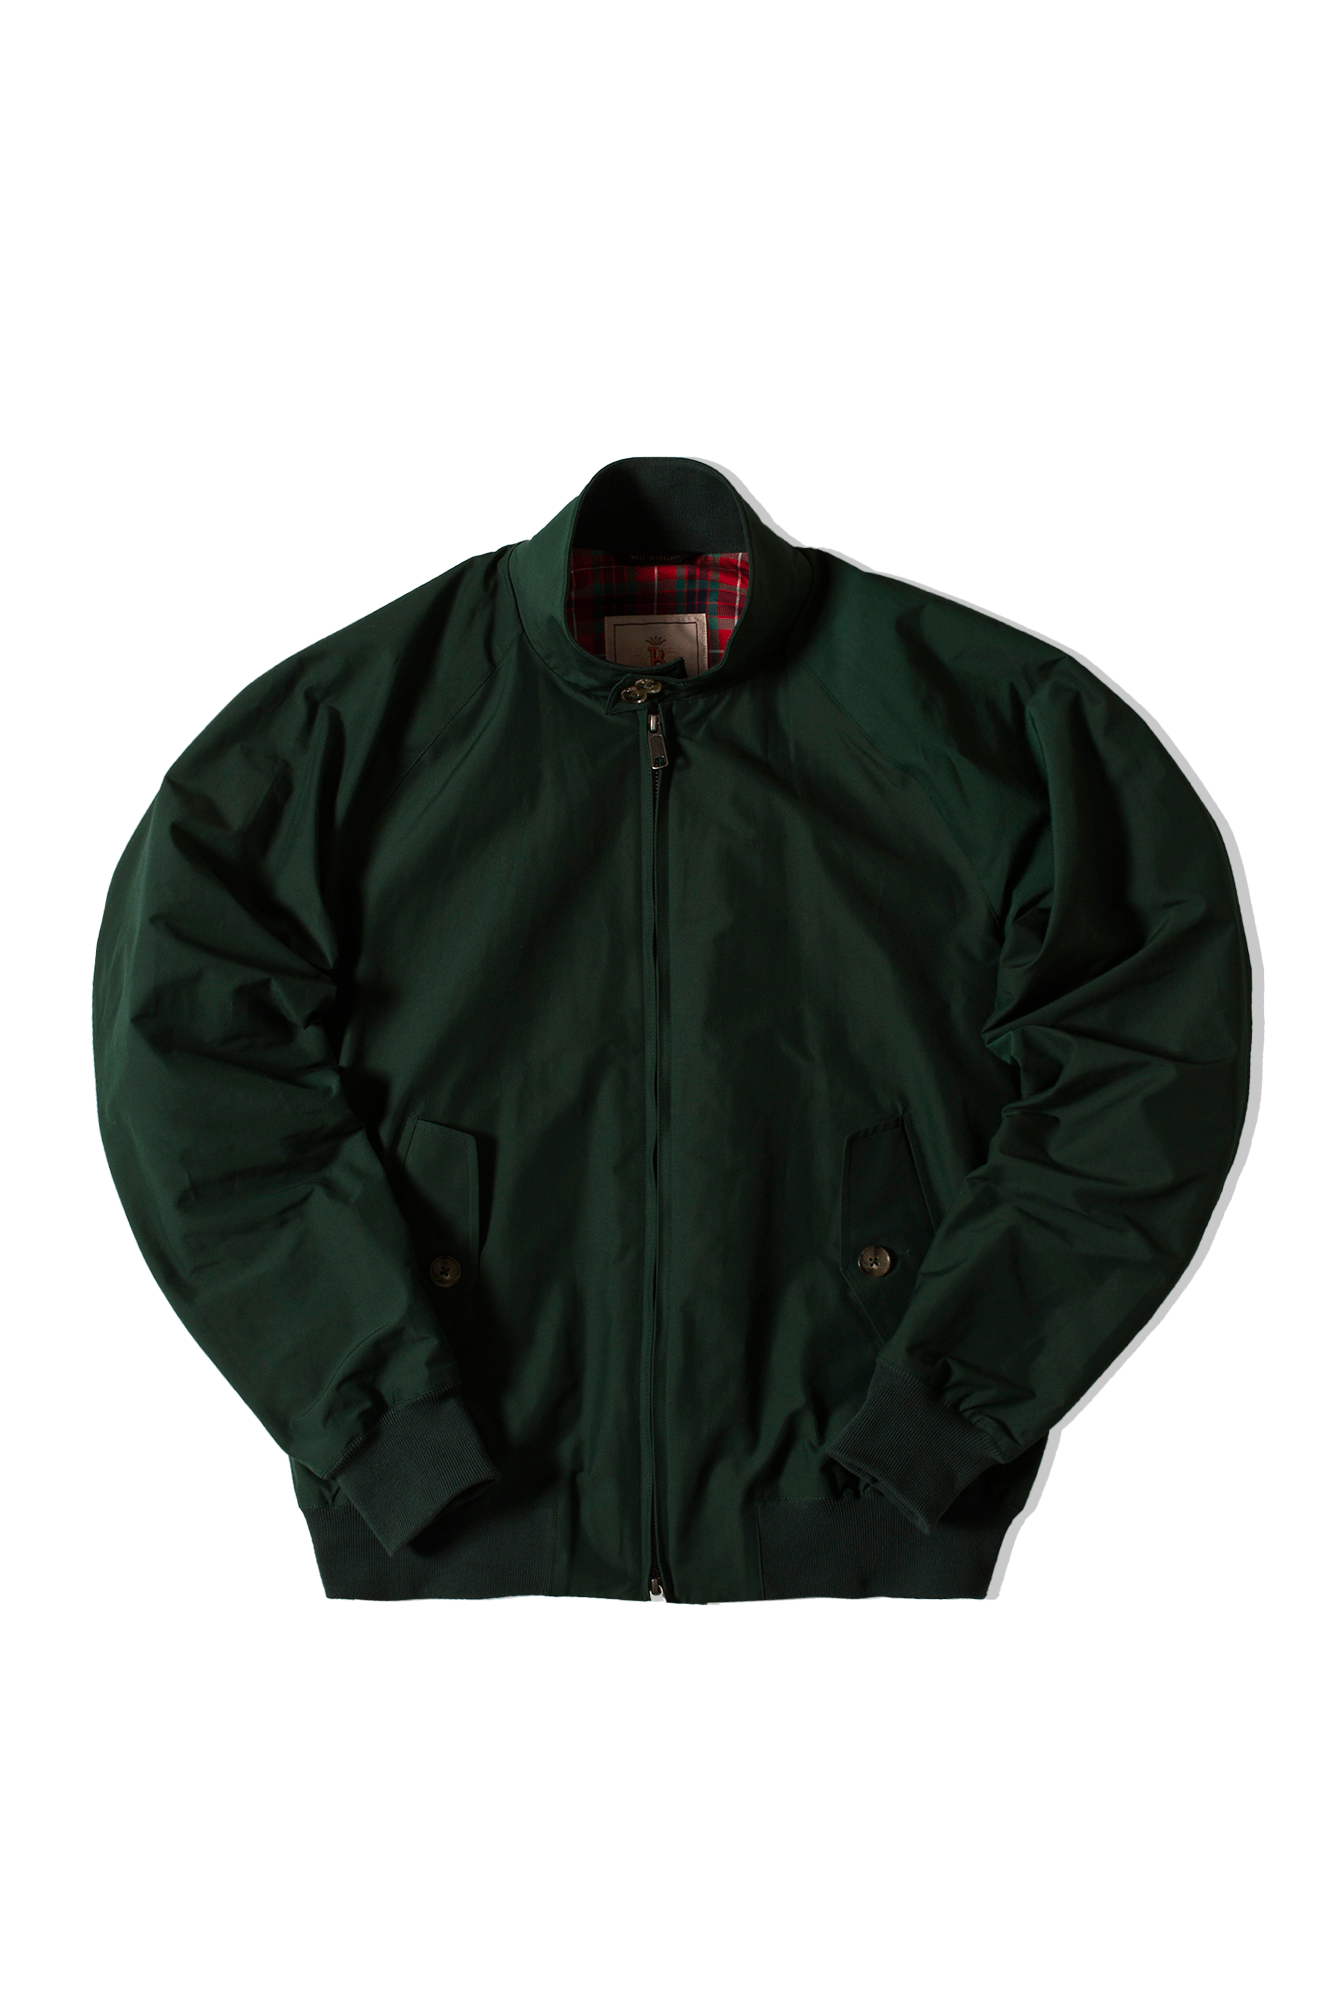 G9 Baracuta Cloth Verde